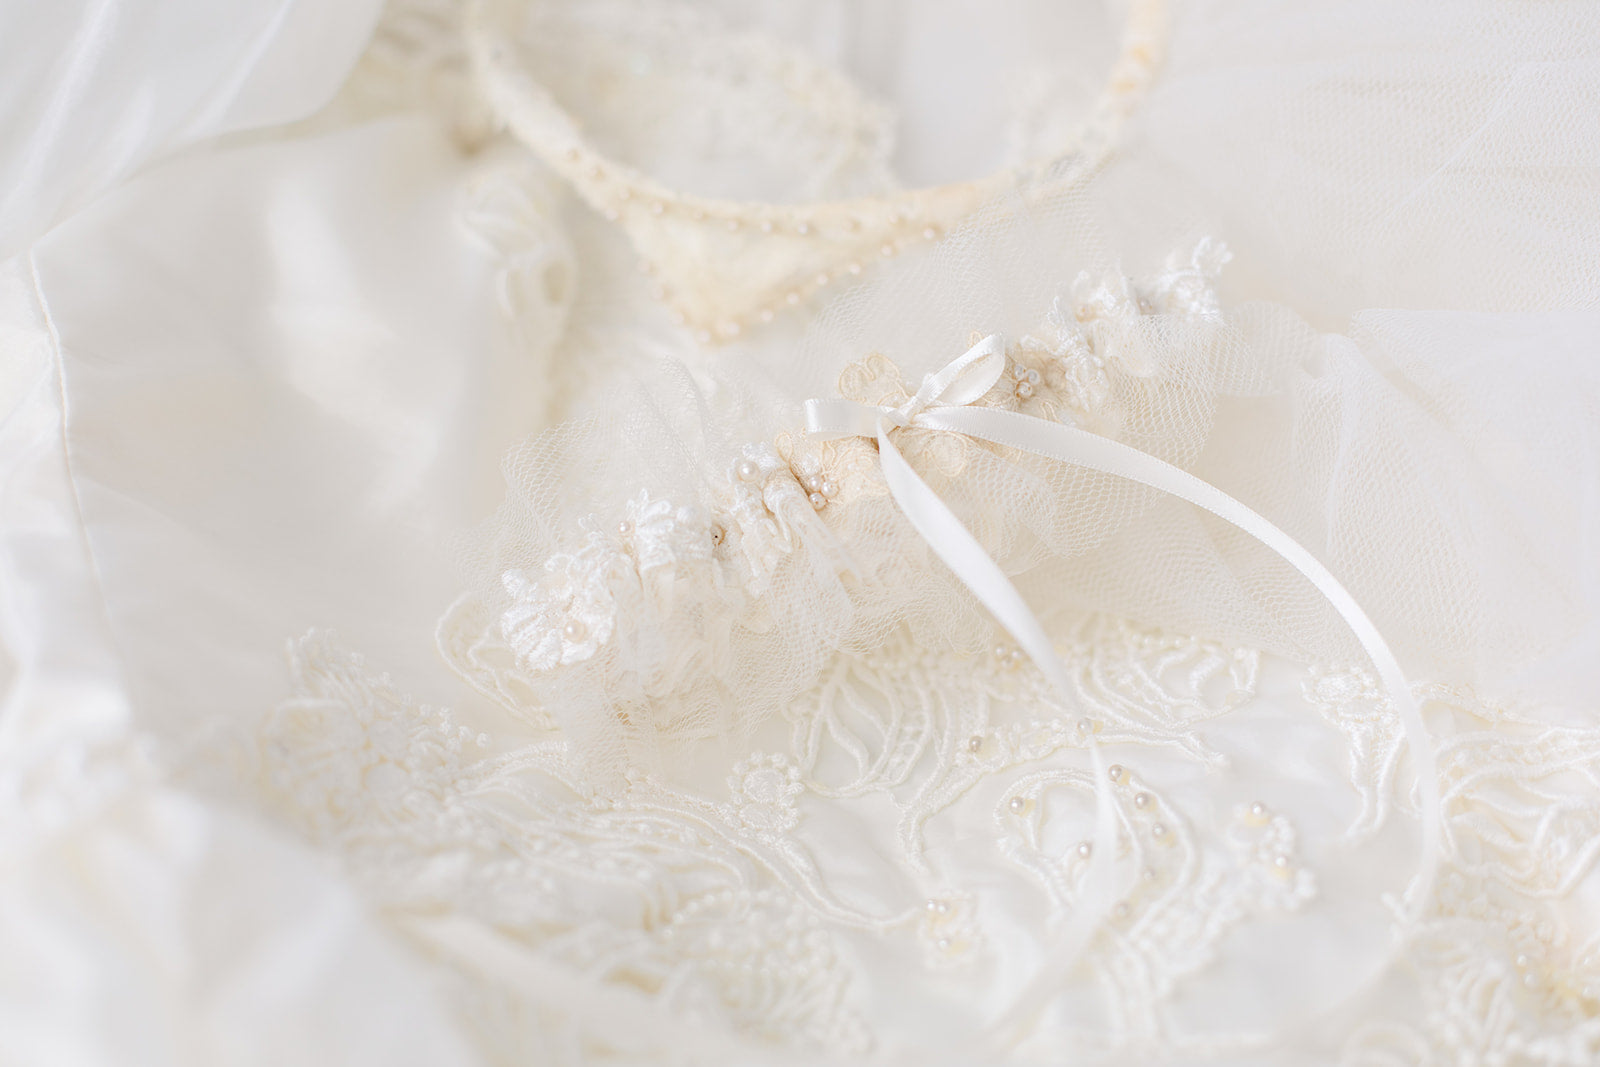 personalized garter made from mother's dress and grandmother's veil